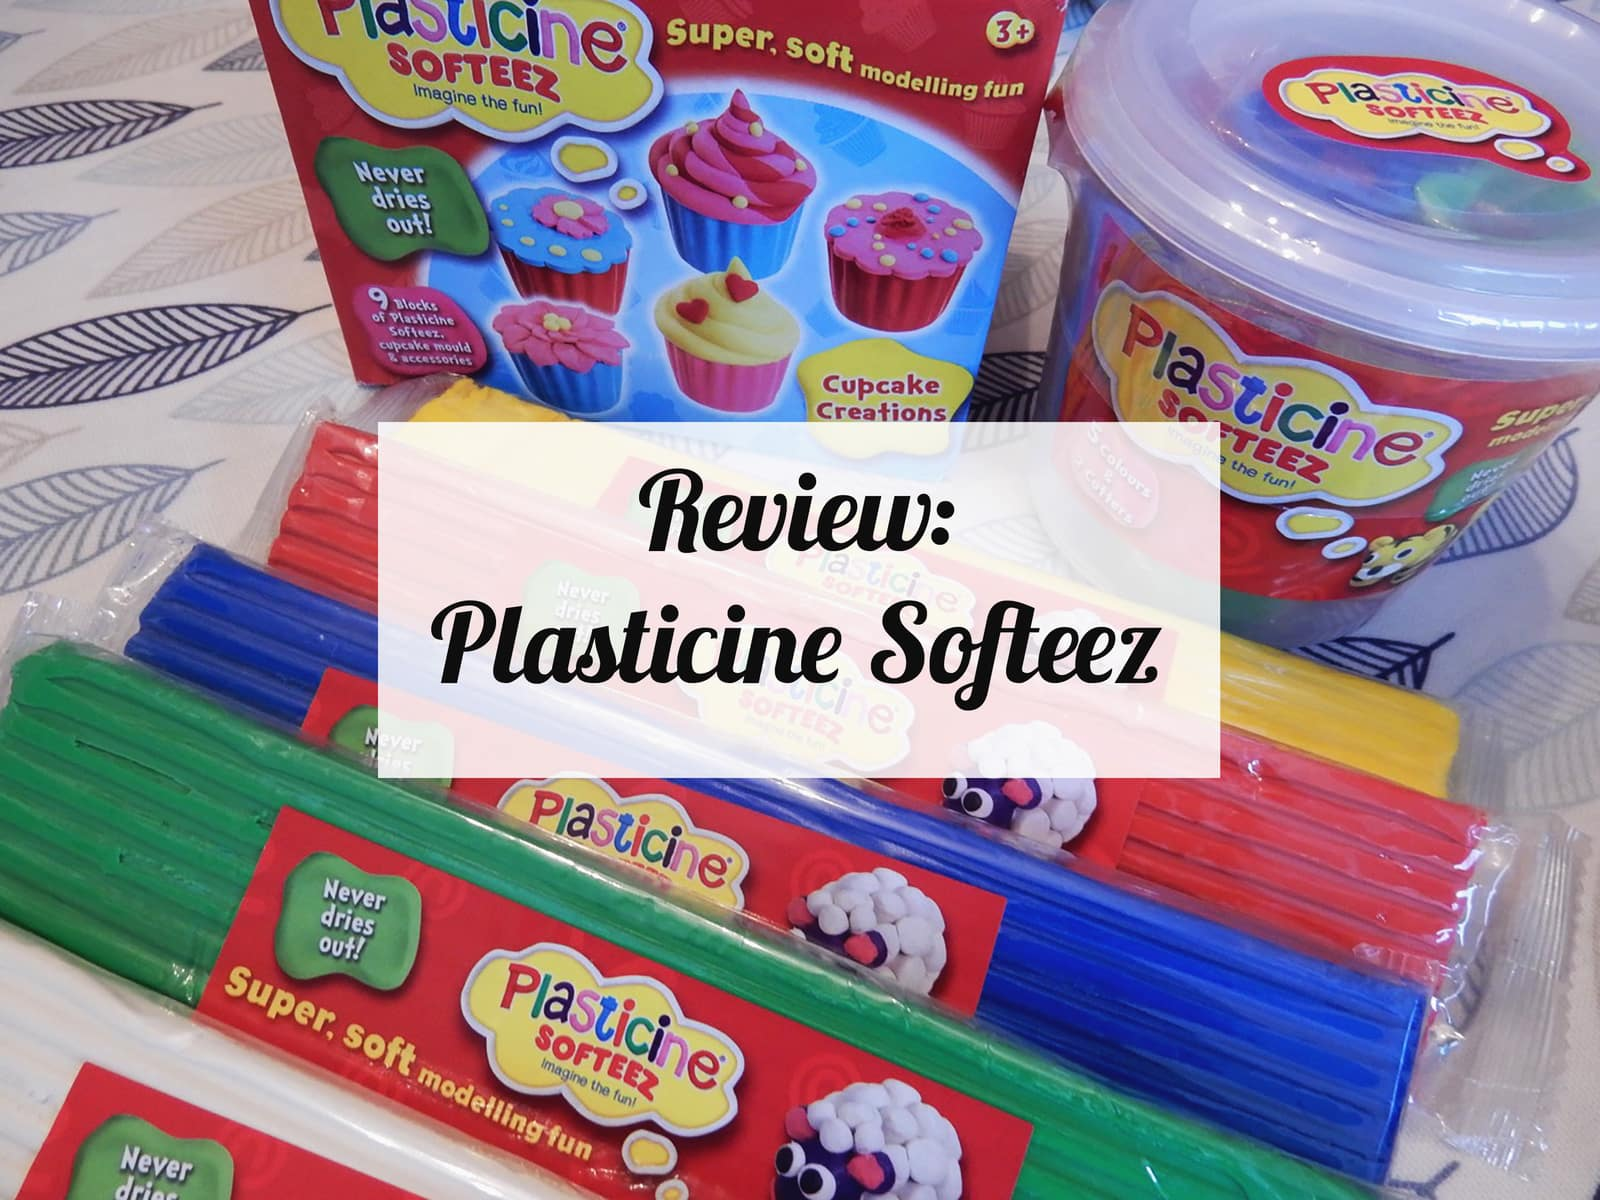 Review: Plasticine Softeez